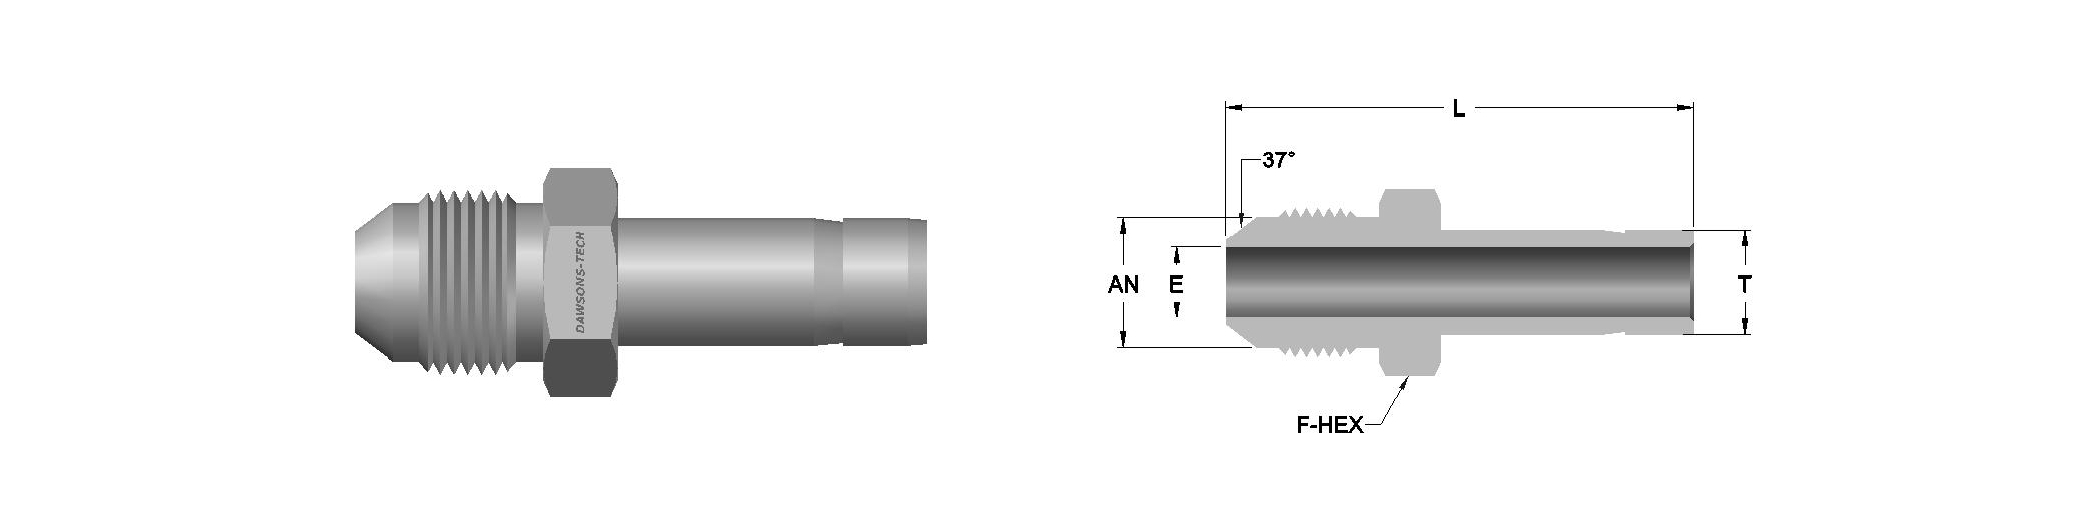 10 AN Male Adapter